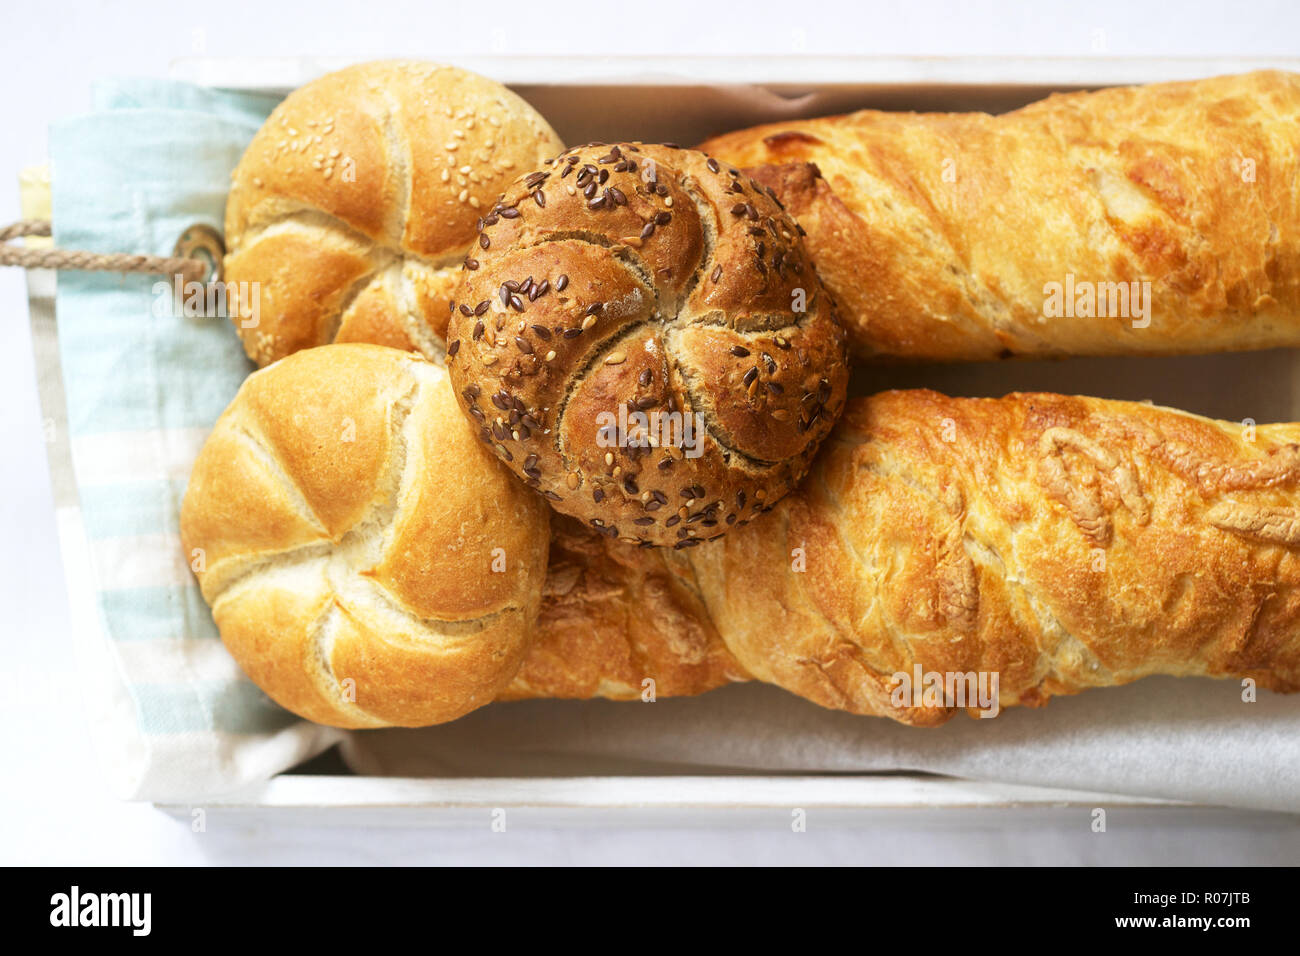 Kaiser wheat and rye flour buns with seeds, mini baguettes with ham and cheese, fresh bread. Stock Photo